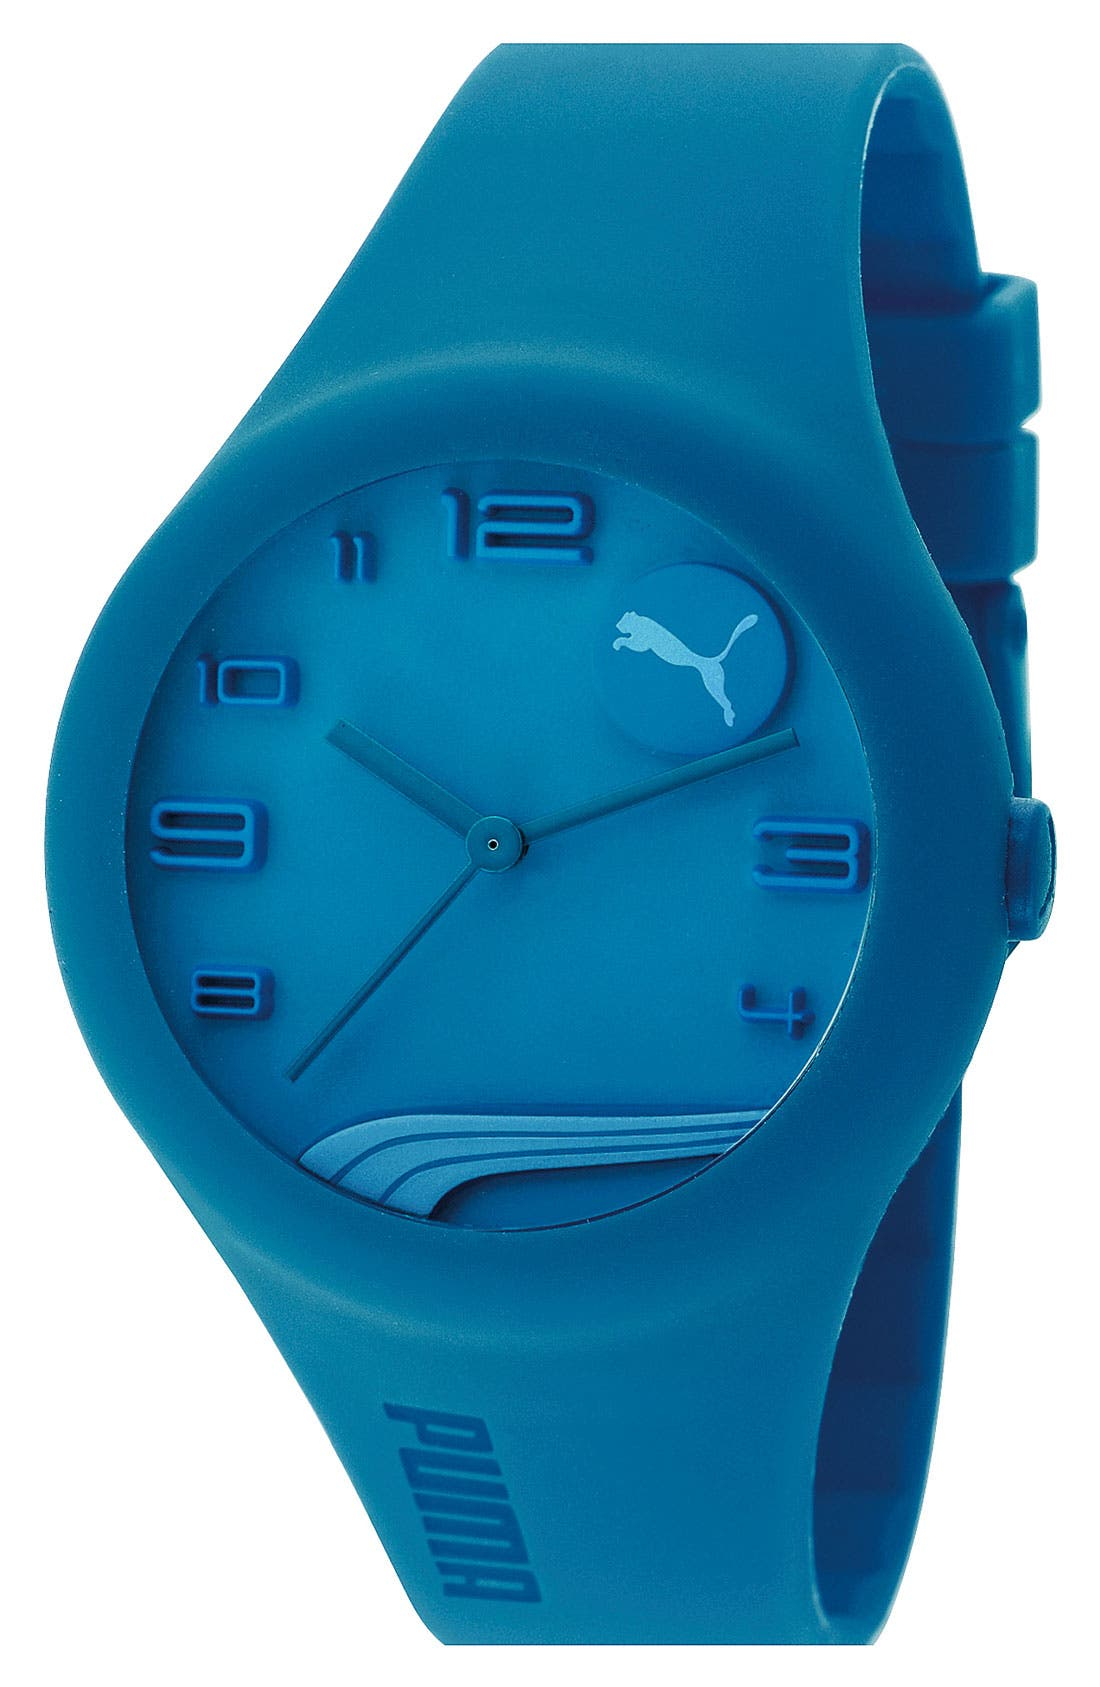 Main Image - PUMA 'Form' Silicone Watch, 44mm